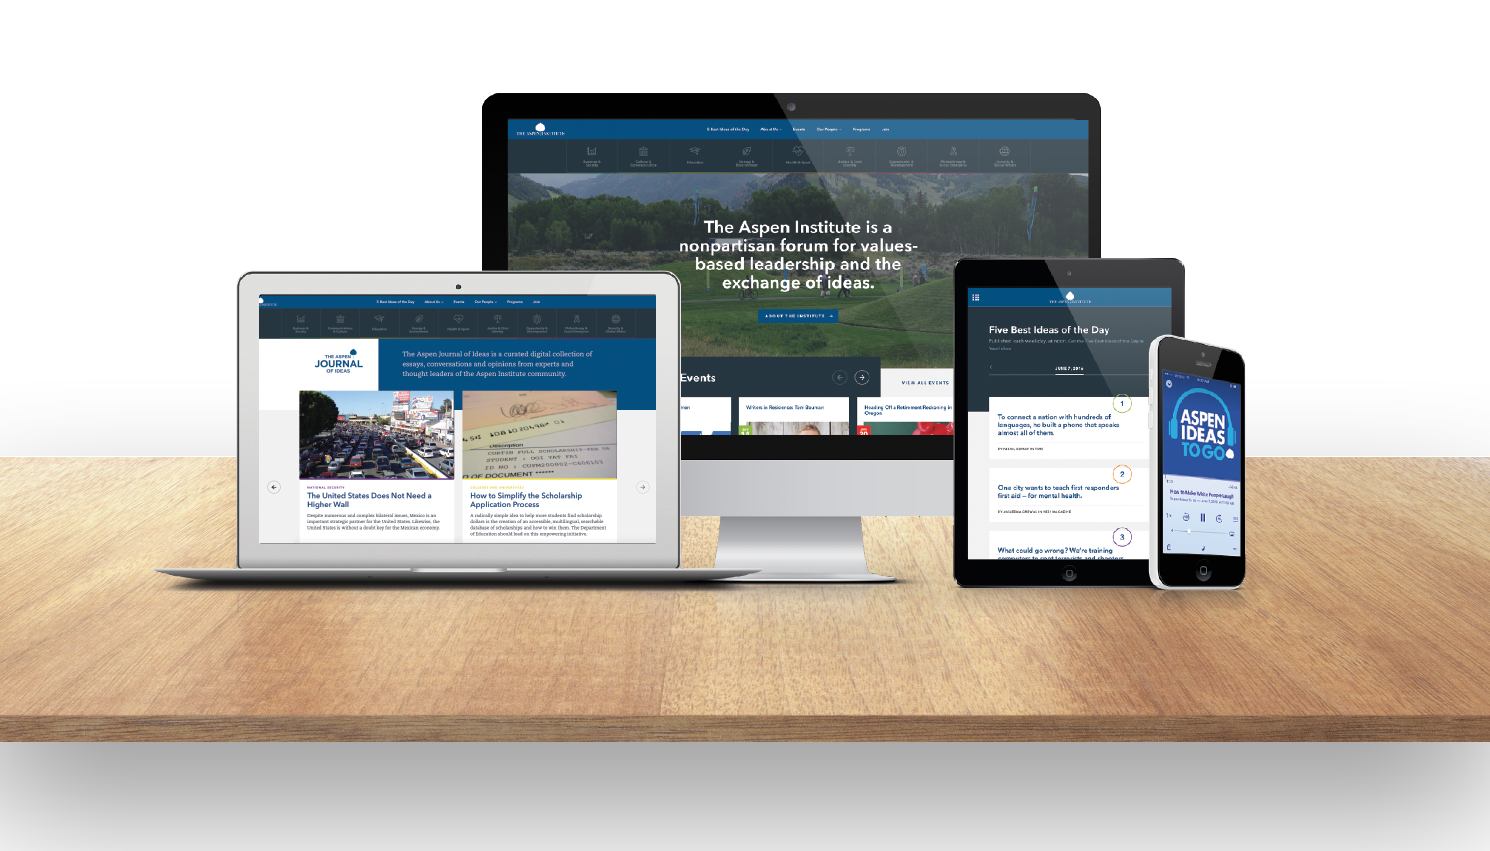 Website of the Aspen Institute displayed on various devices